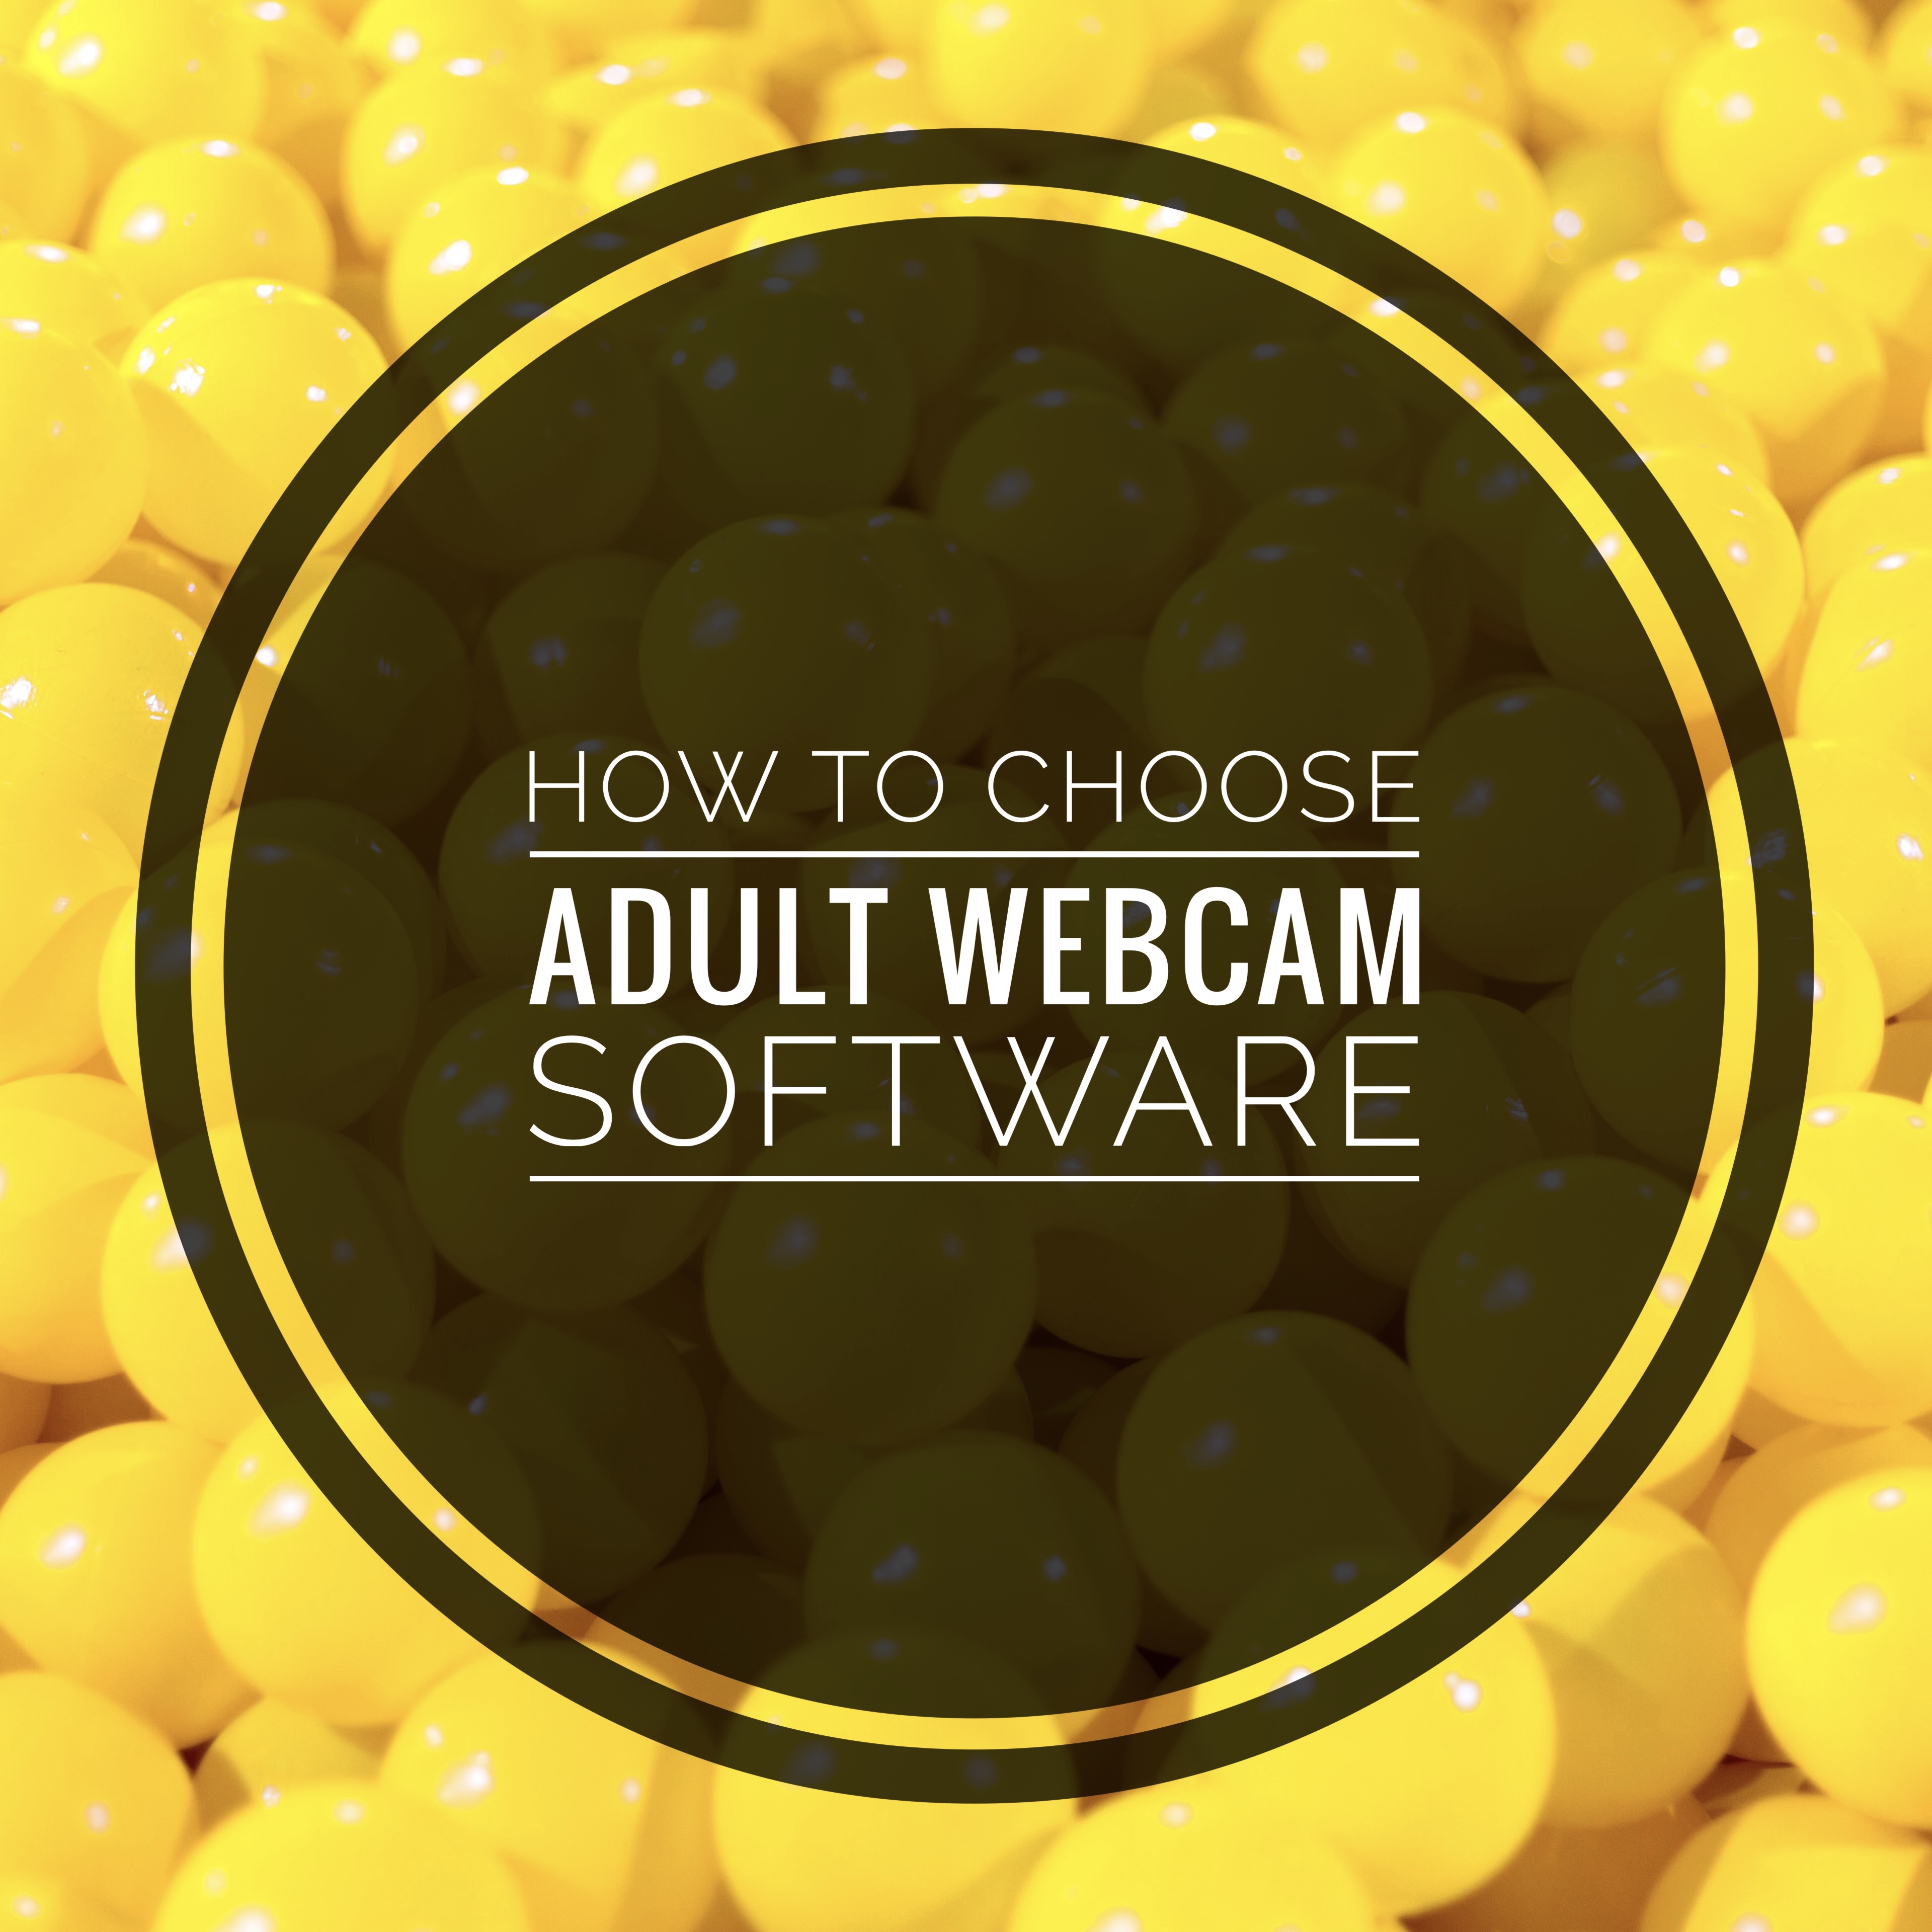 how to choose adult webcam software